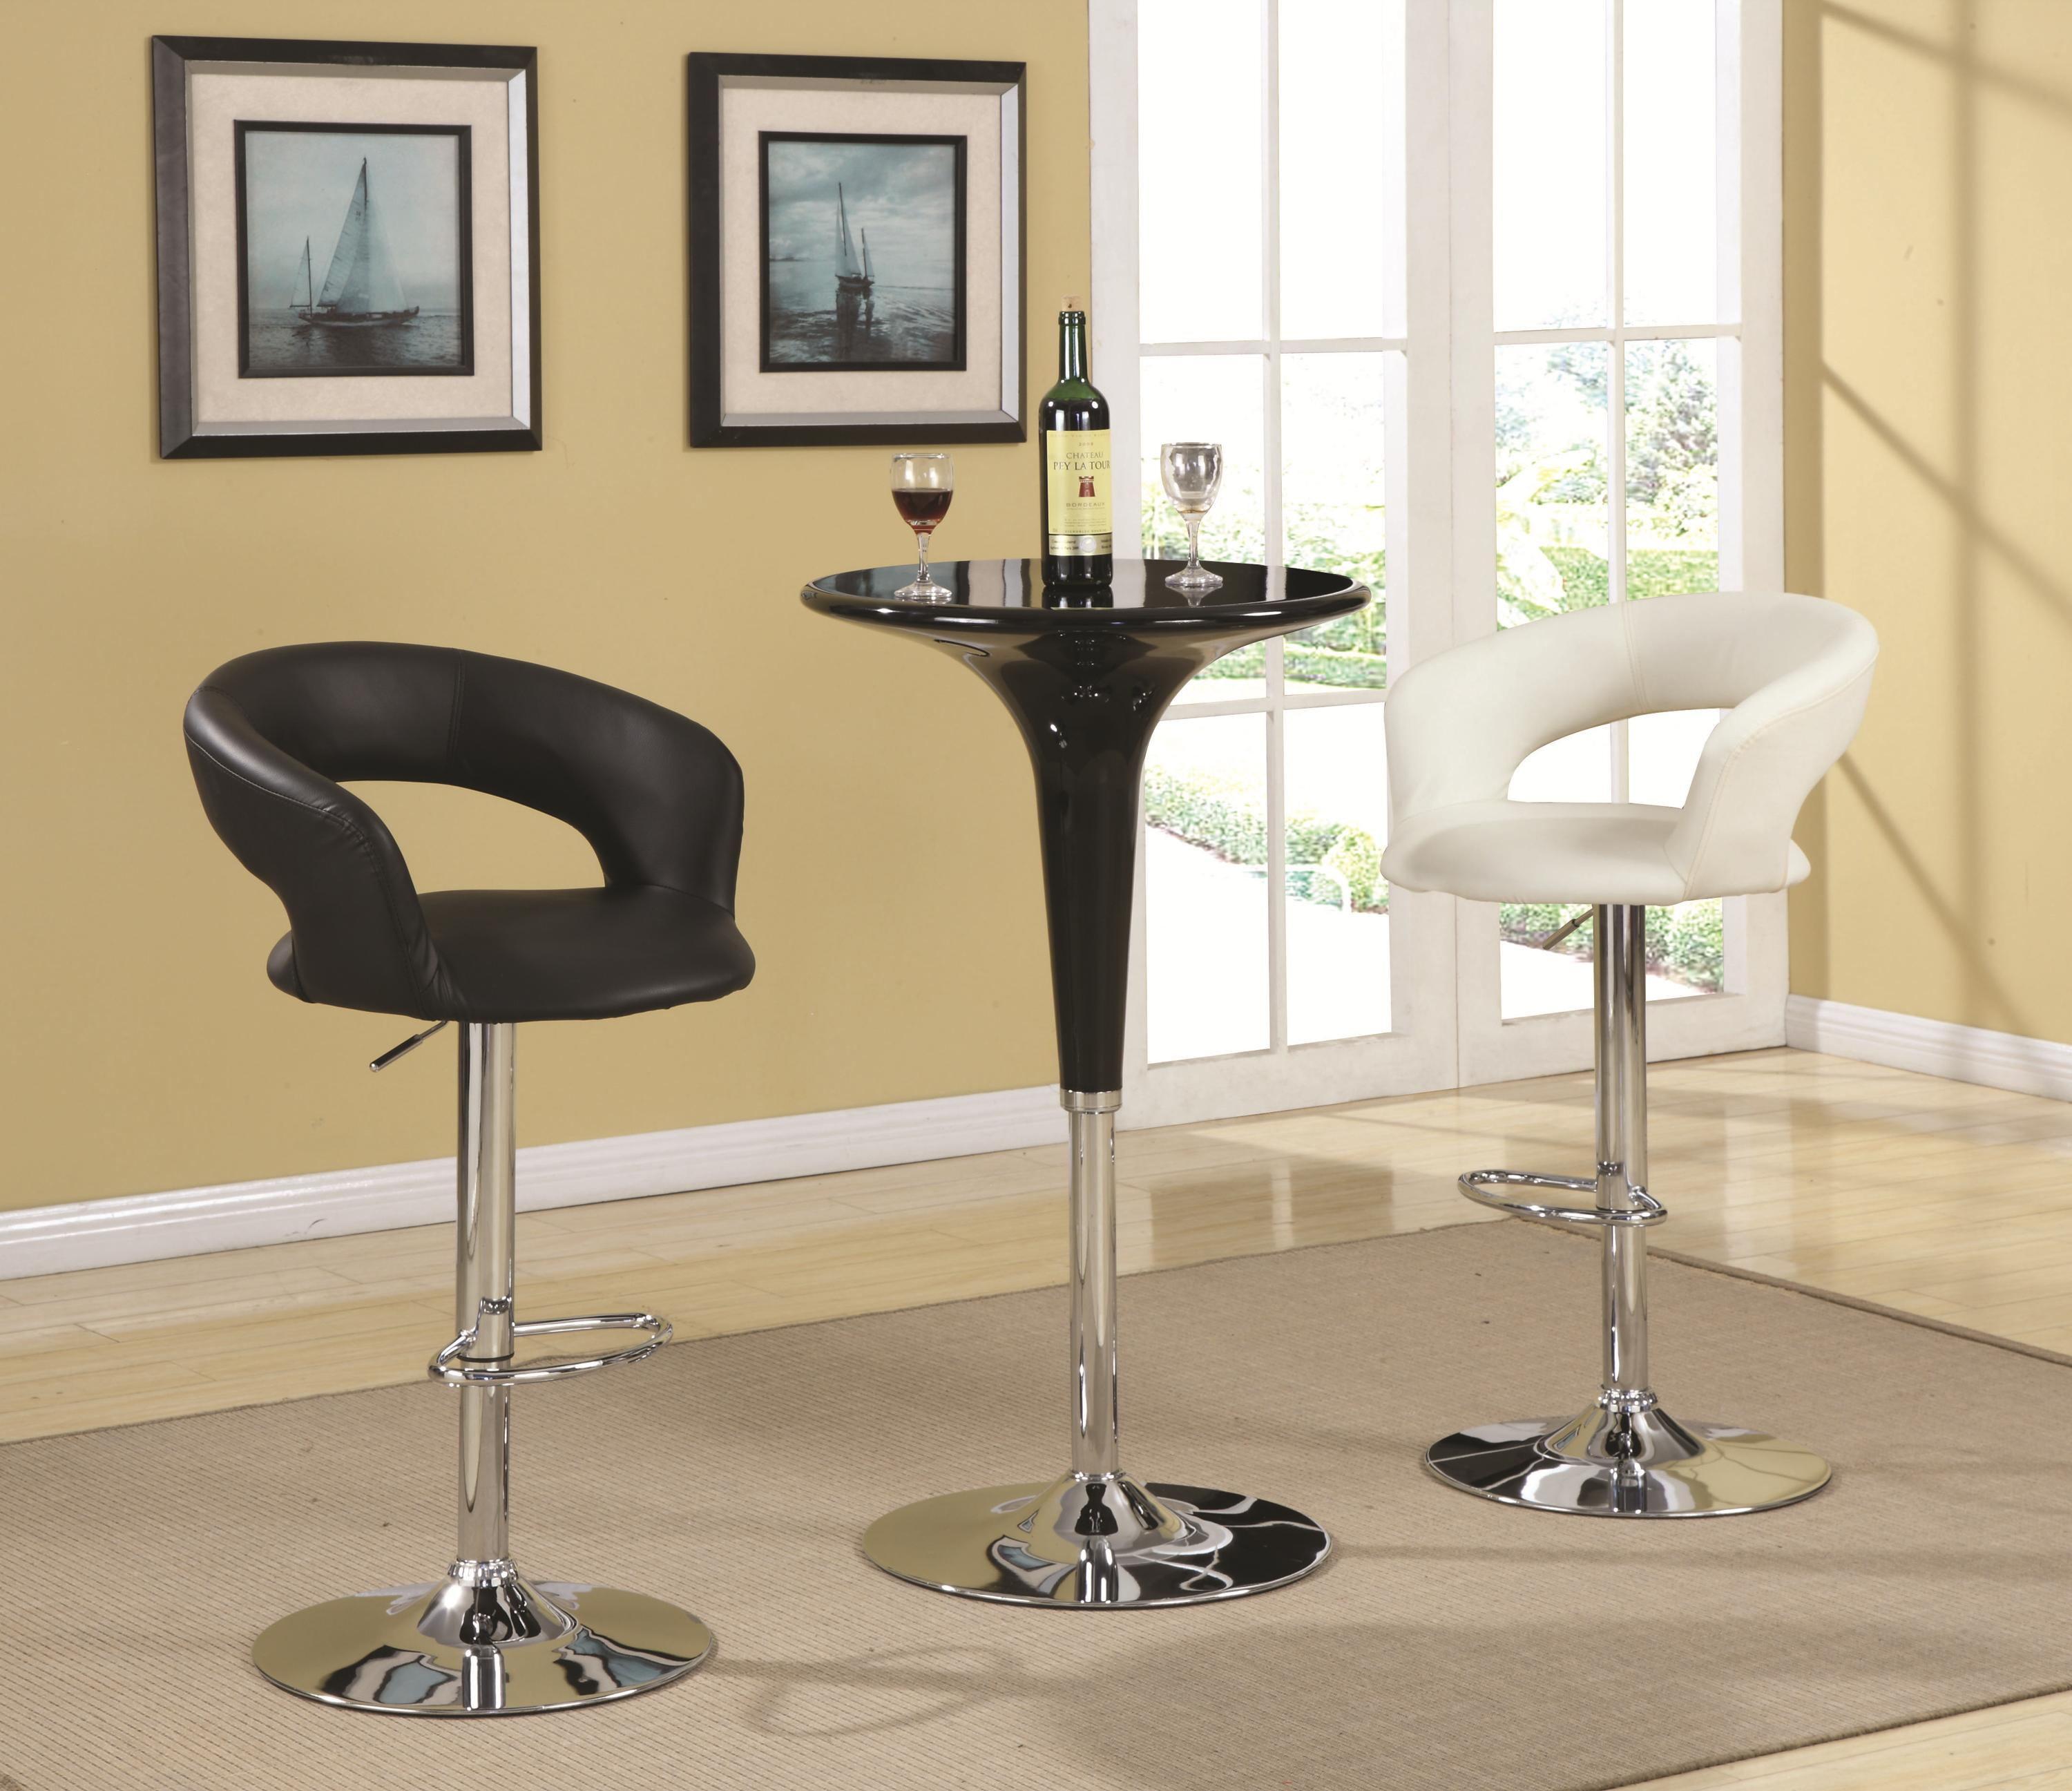 Fine furniture san diego kitchen dining bar stools 29 bar table set watchthetrailerfo